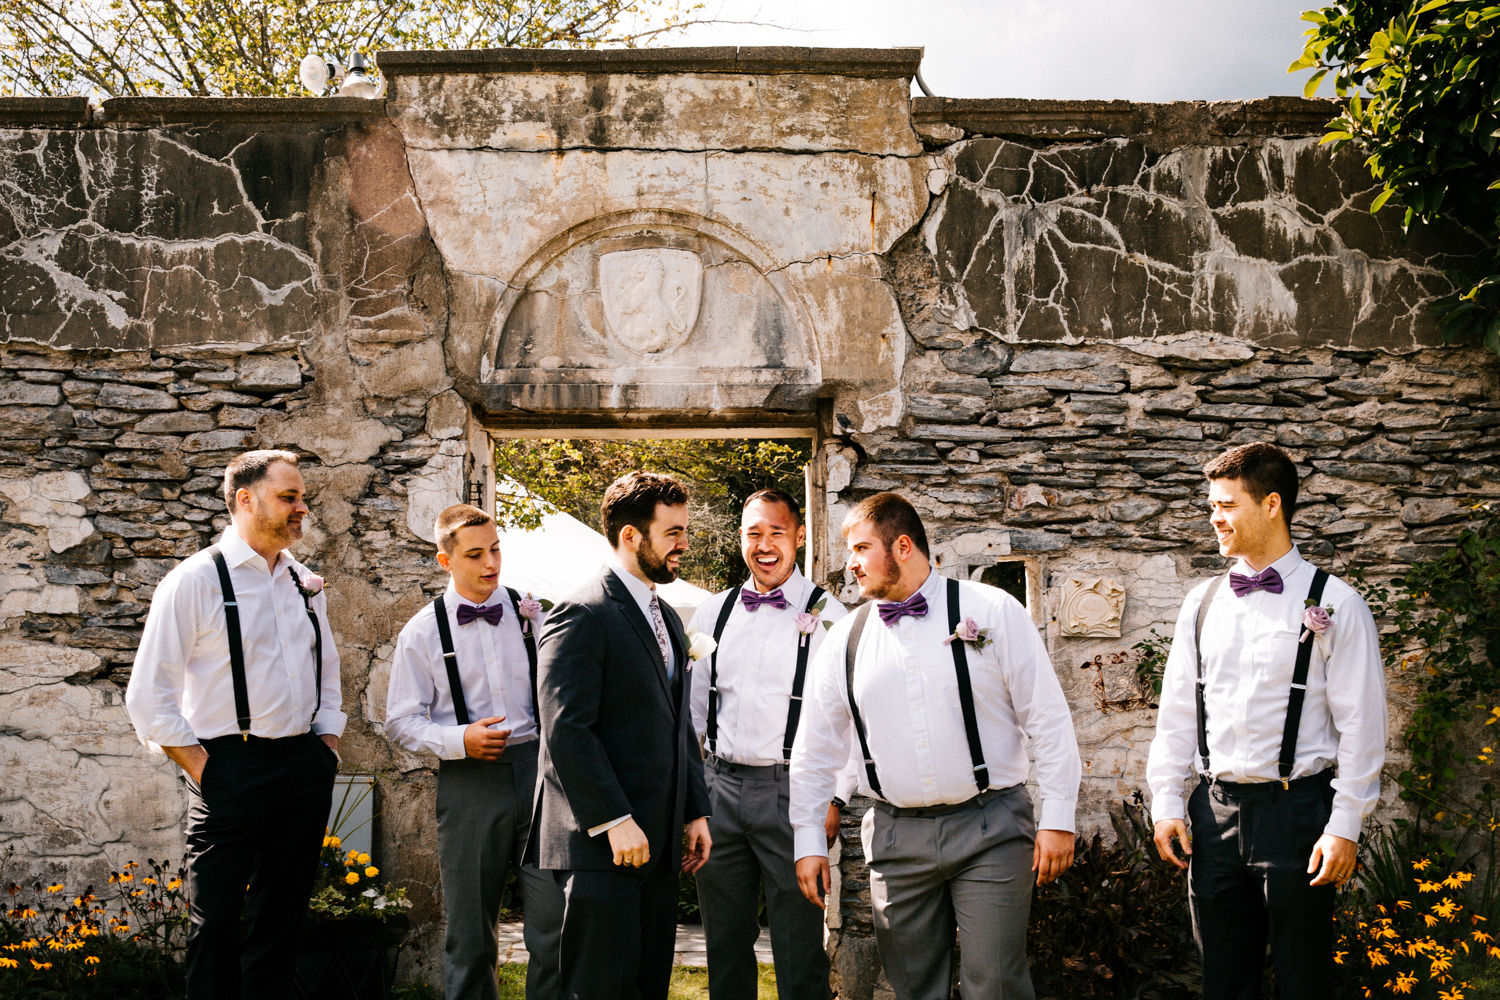 connecticut-new-england-wedding-pomfret-center-gwyn-careg-groomsmen-groom-ri-ma.jpg